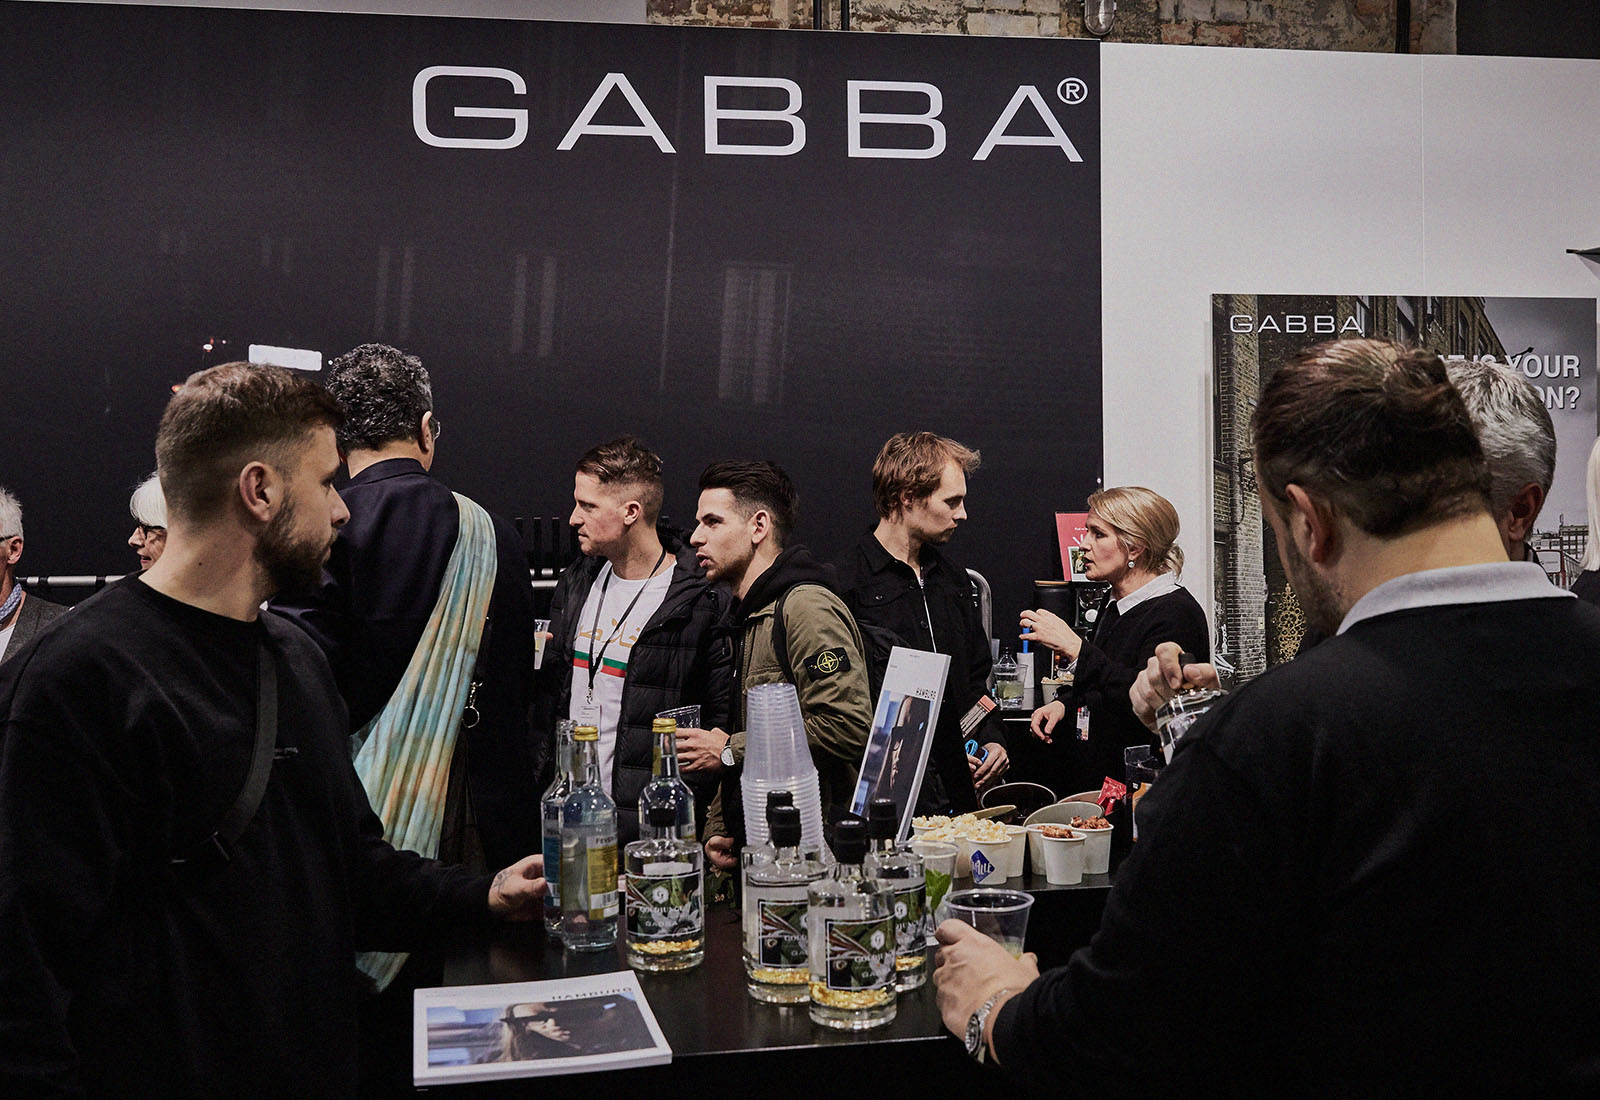 Gabba, Sportswear International, Fashion Week Berlin, 2018, Instinkte, Premium Exhibition